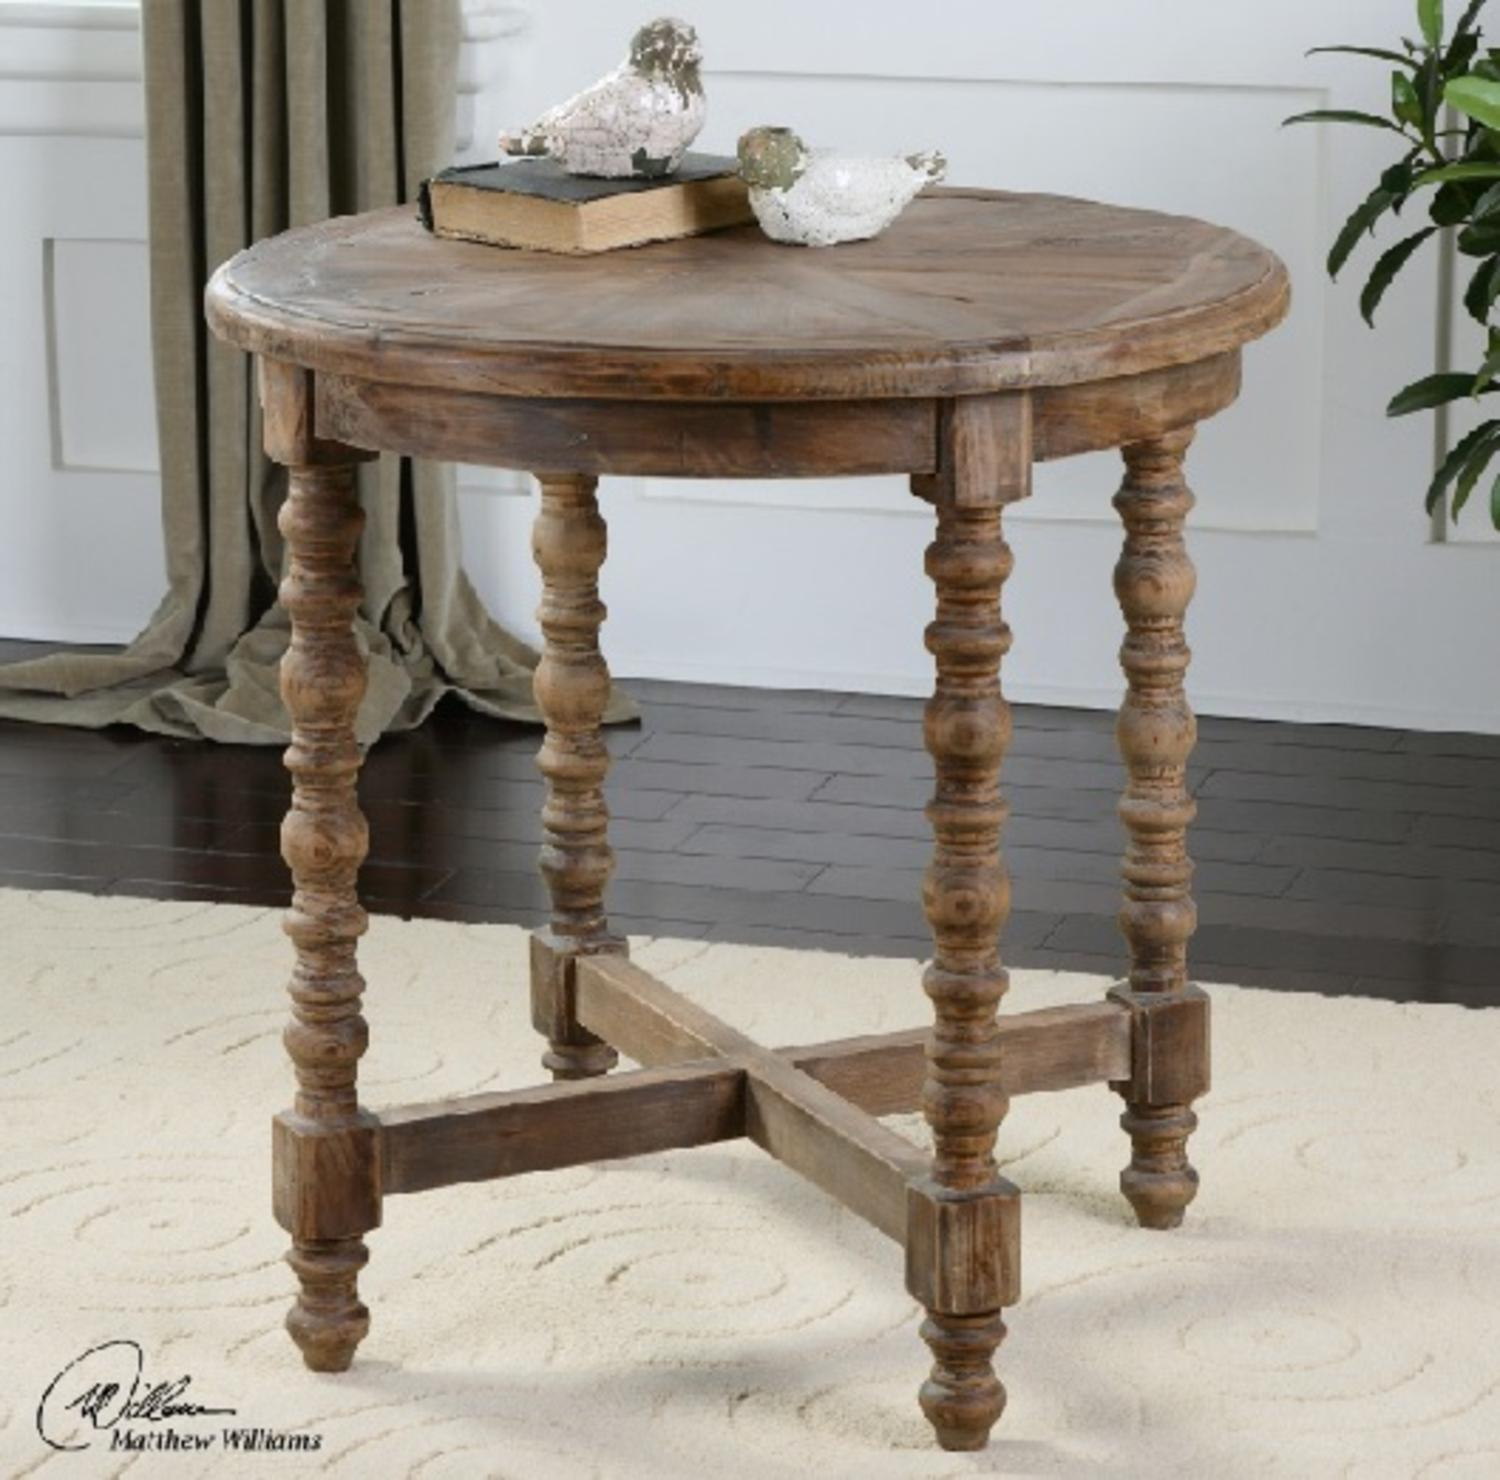 "26"" Sunburst Eco-Friendly Distressed Recycled Fir Circular Wooden End Table"